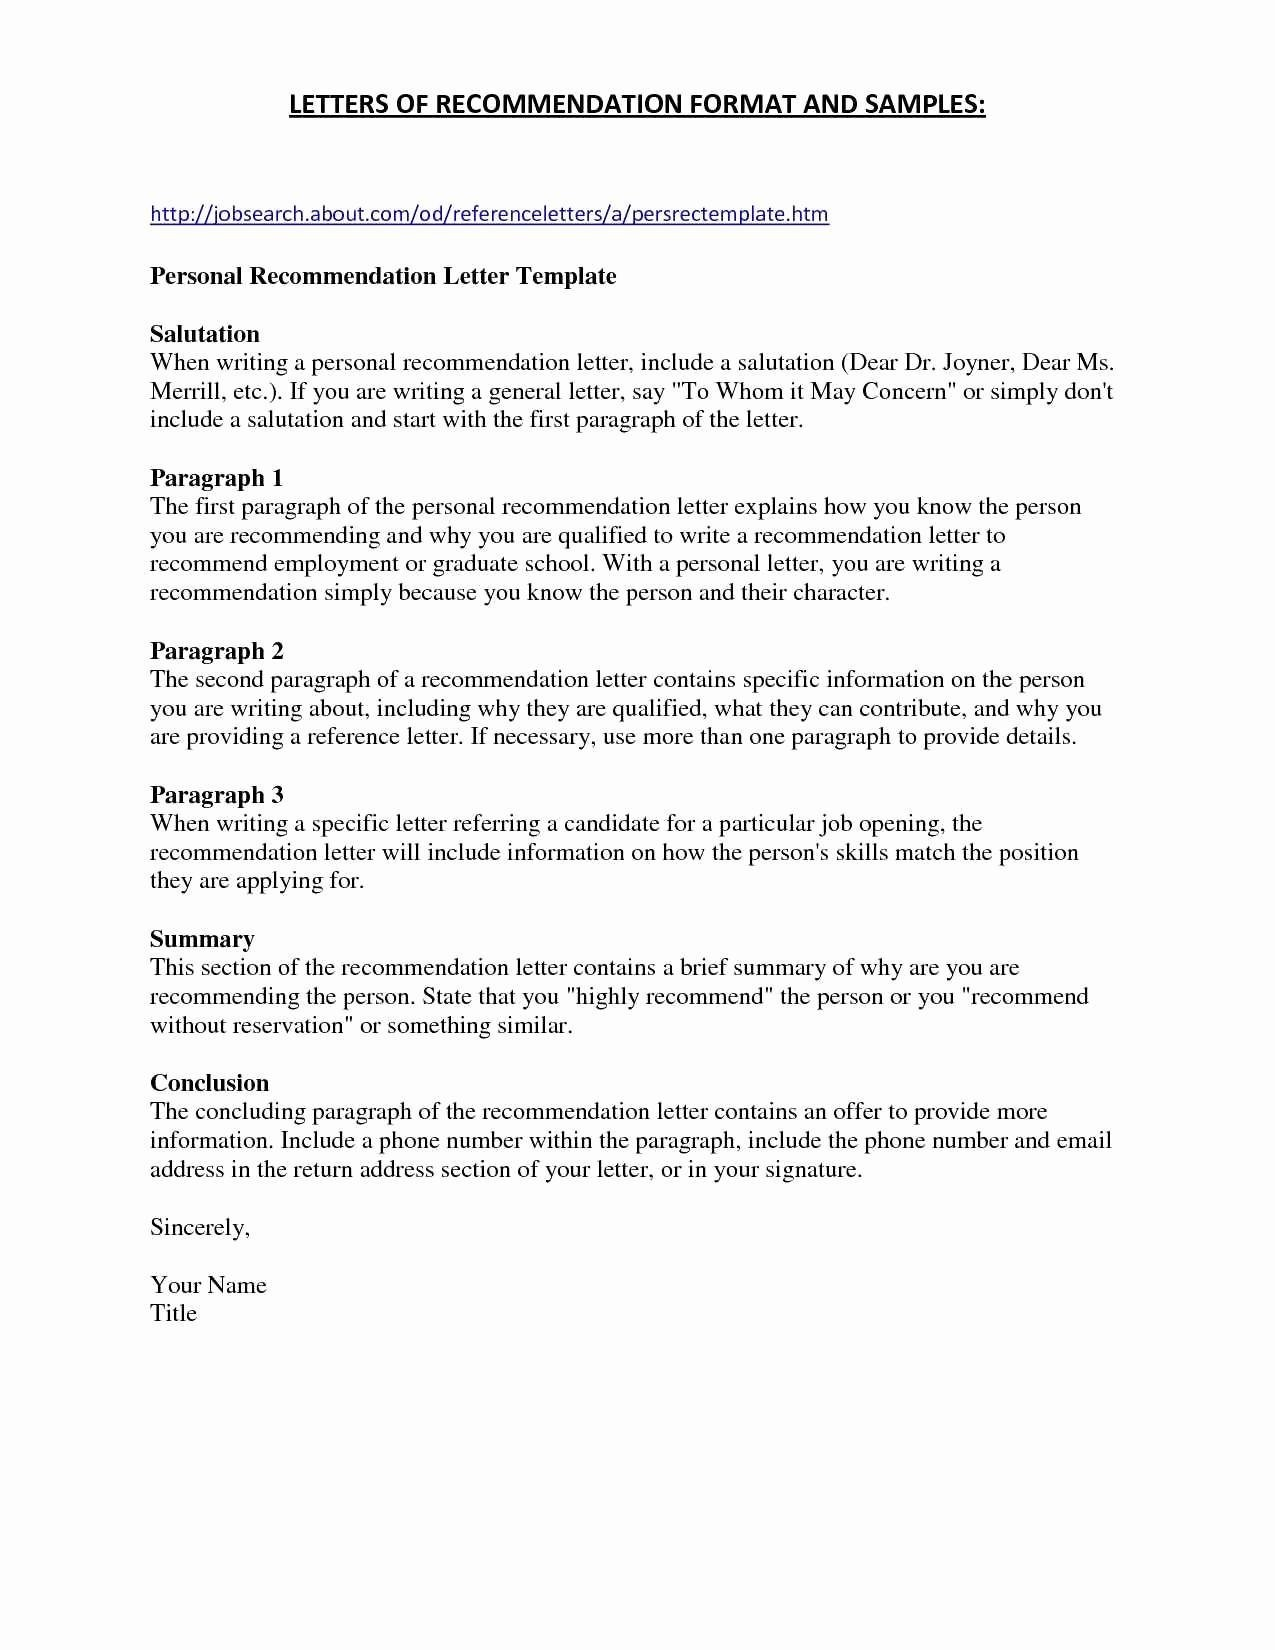 Marketing Letter Template - Resume Cover Letter Examples It Best Resume and Cover Letter